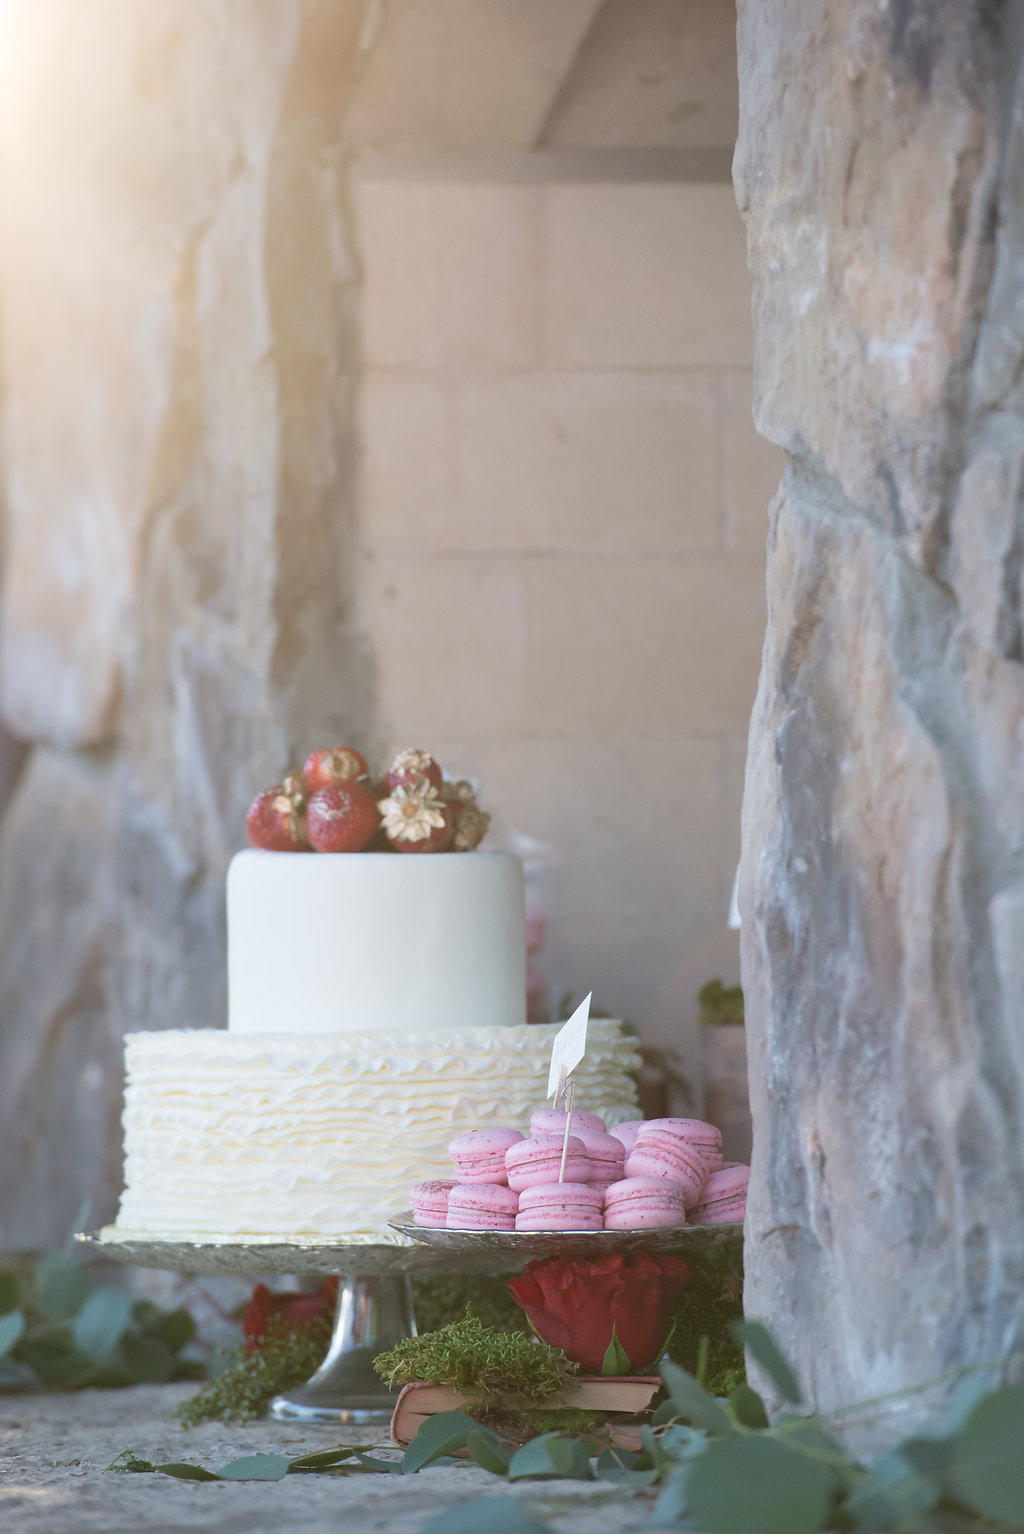 Macarons as wedding dessert | Kelly Birch Photography